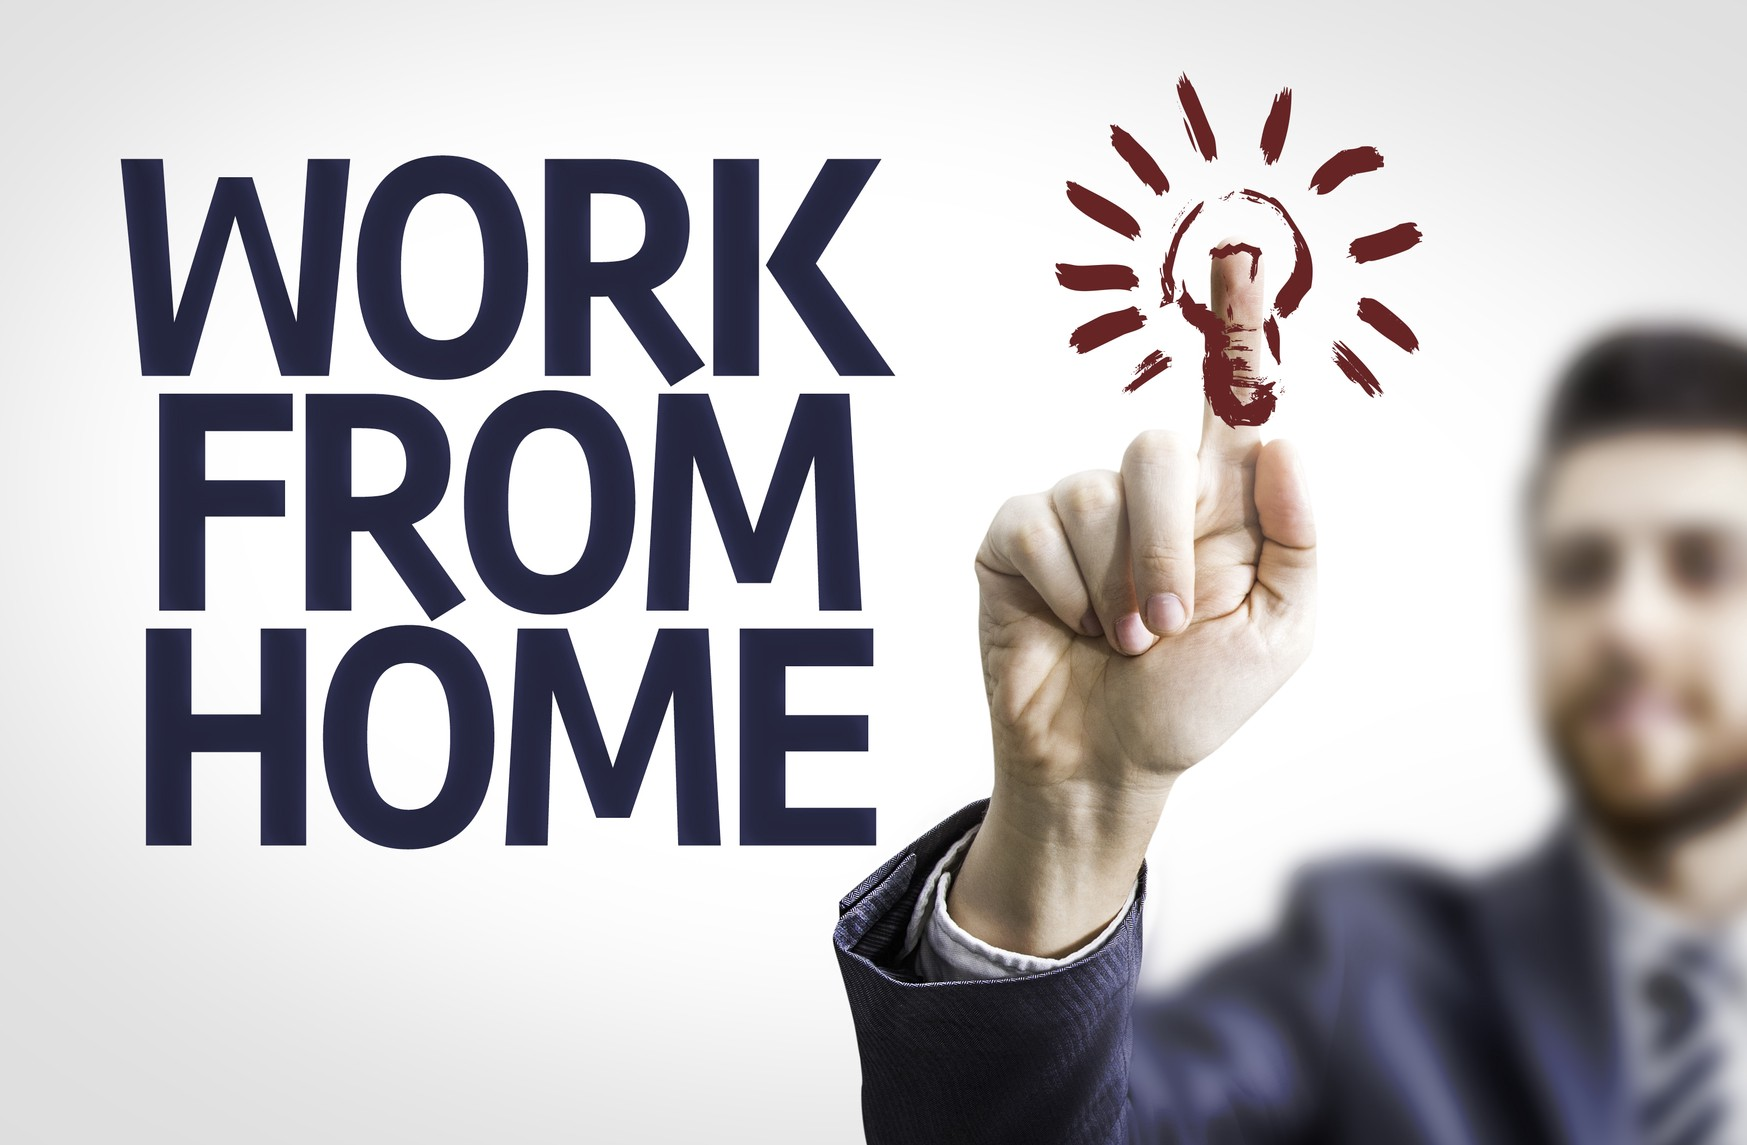 Part Time Work From Home Without Investment | by Kanha Publication | Medium